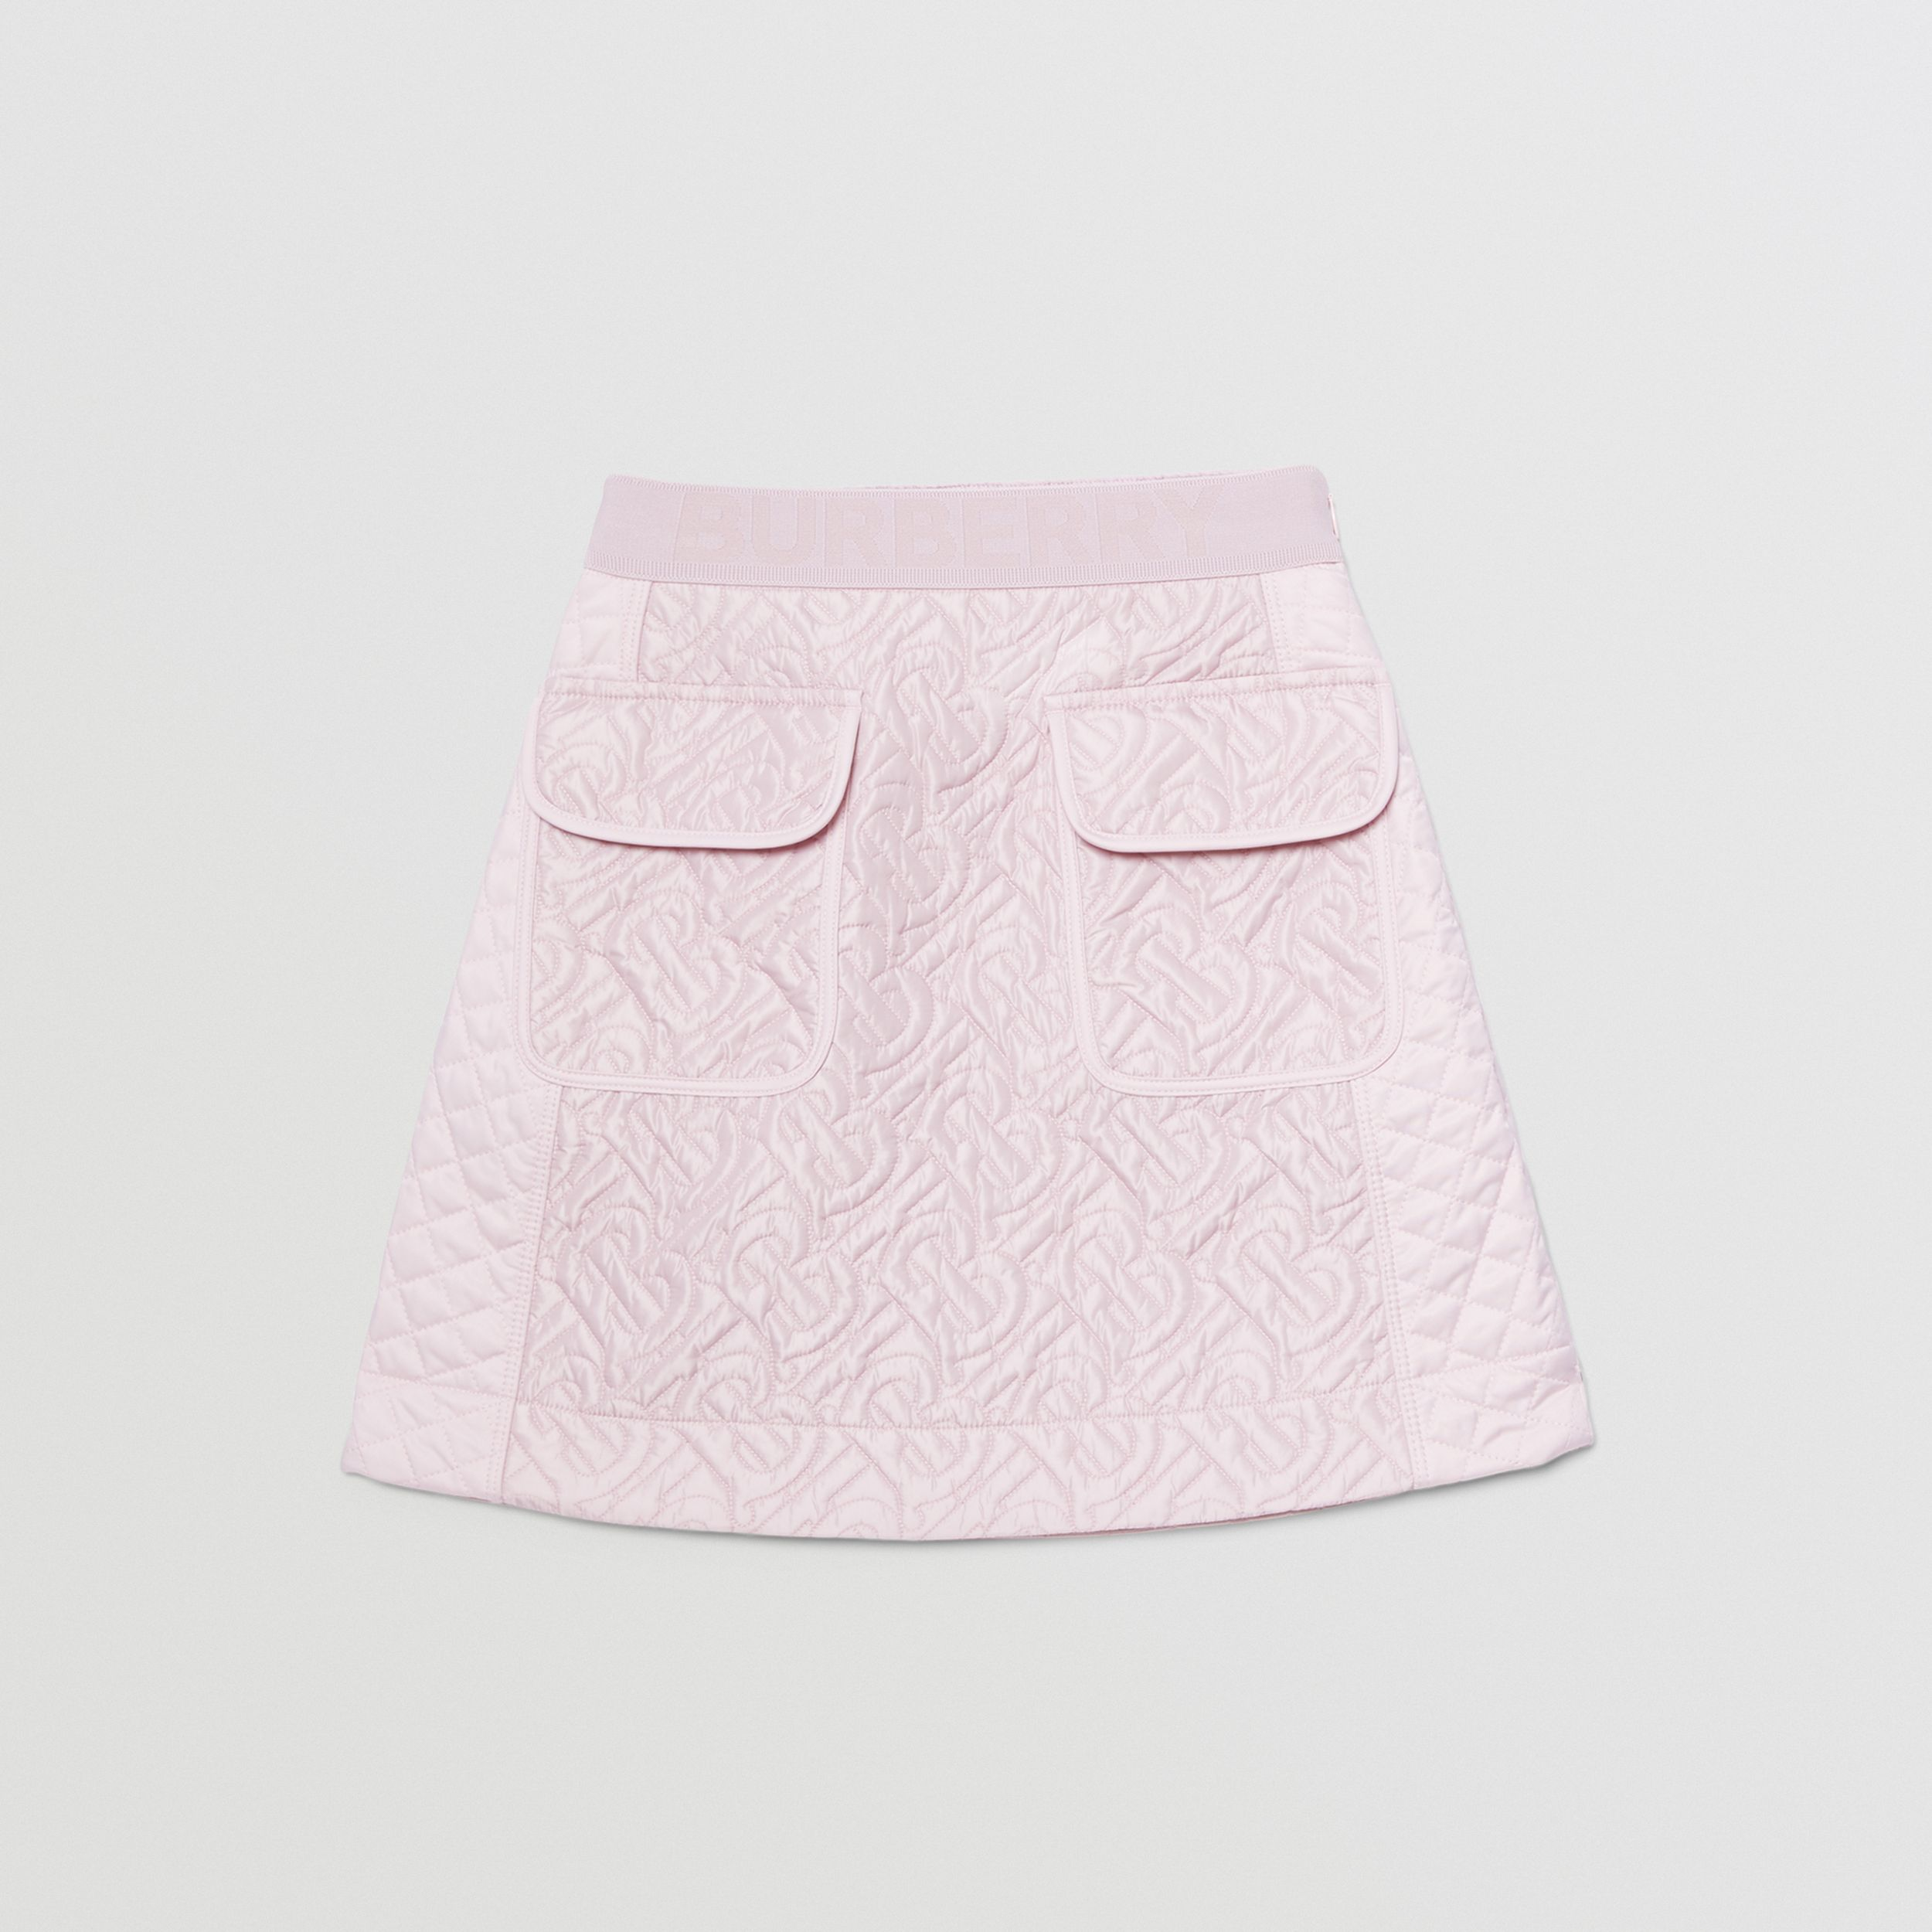 Monogram Quilted Panel Recycled Polyester Skirt in Pastel Pink | Burberry - 1